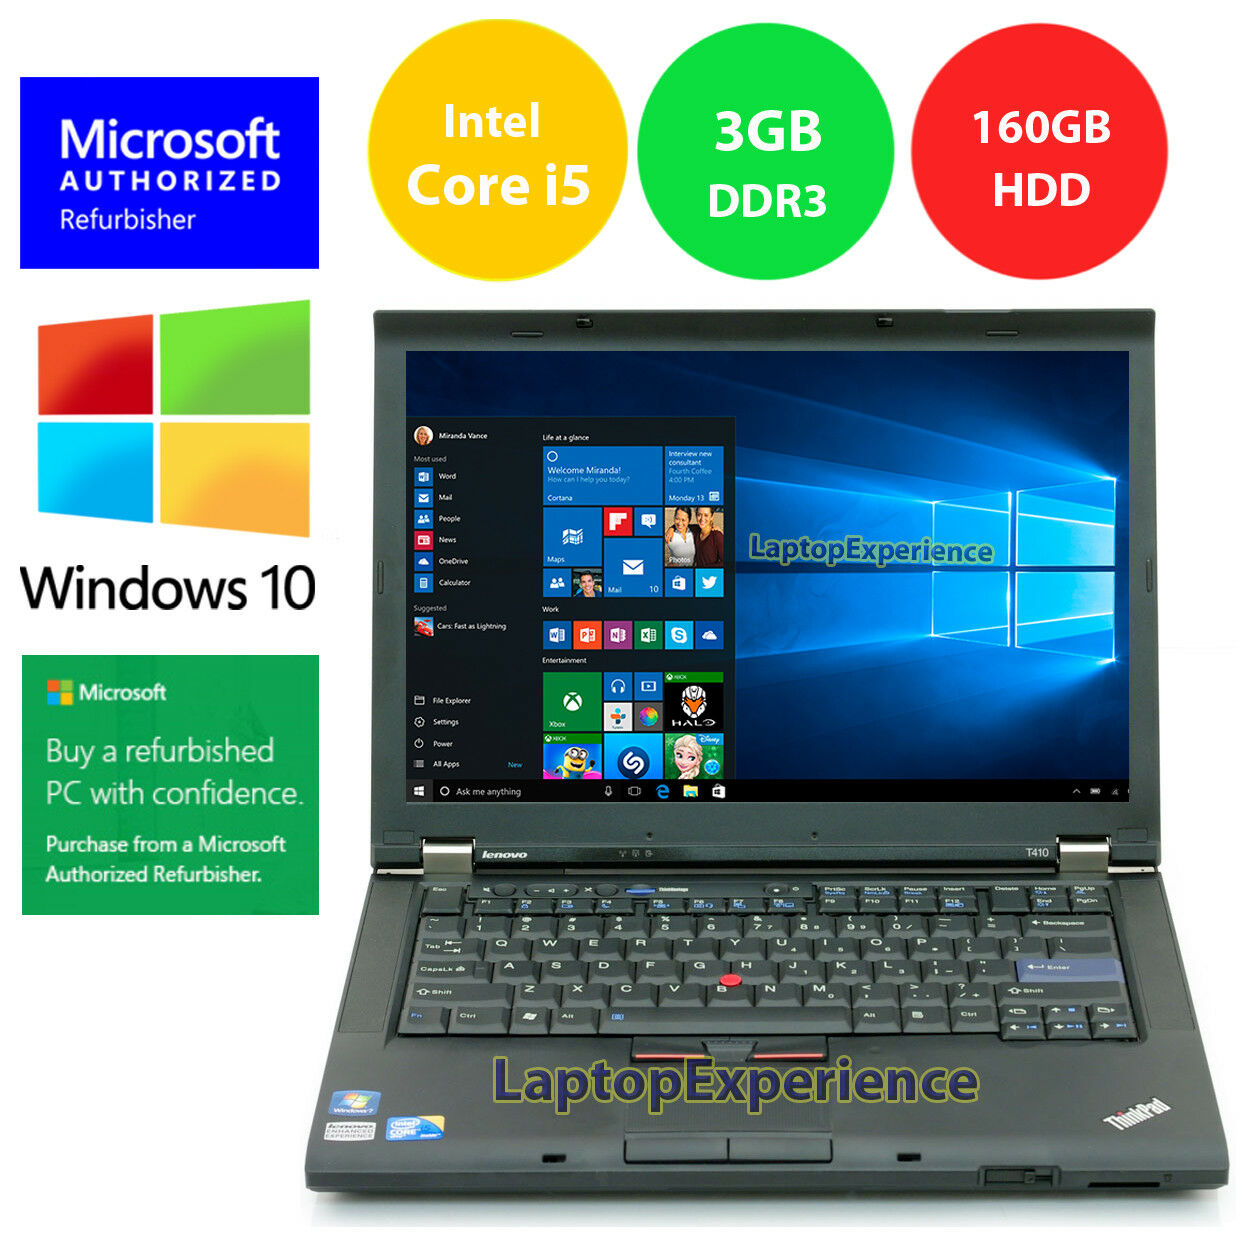 Laptop Windows - LENOVO THINKPAD T410 LAPTOP WINDOWS 10 WIN 32bit i5 2.4GHz 160GB HD DVD WiFi PC